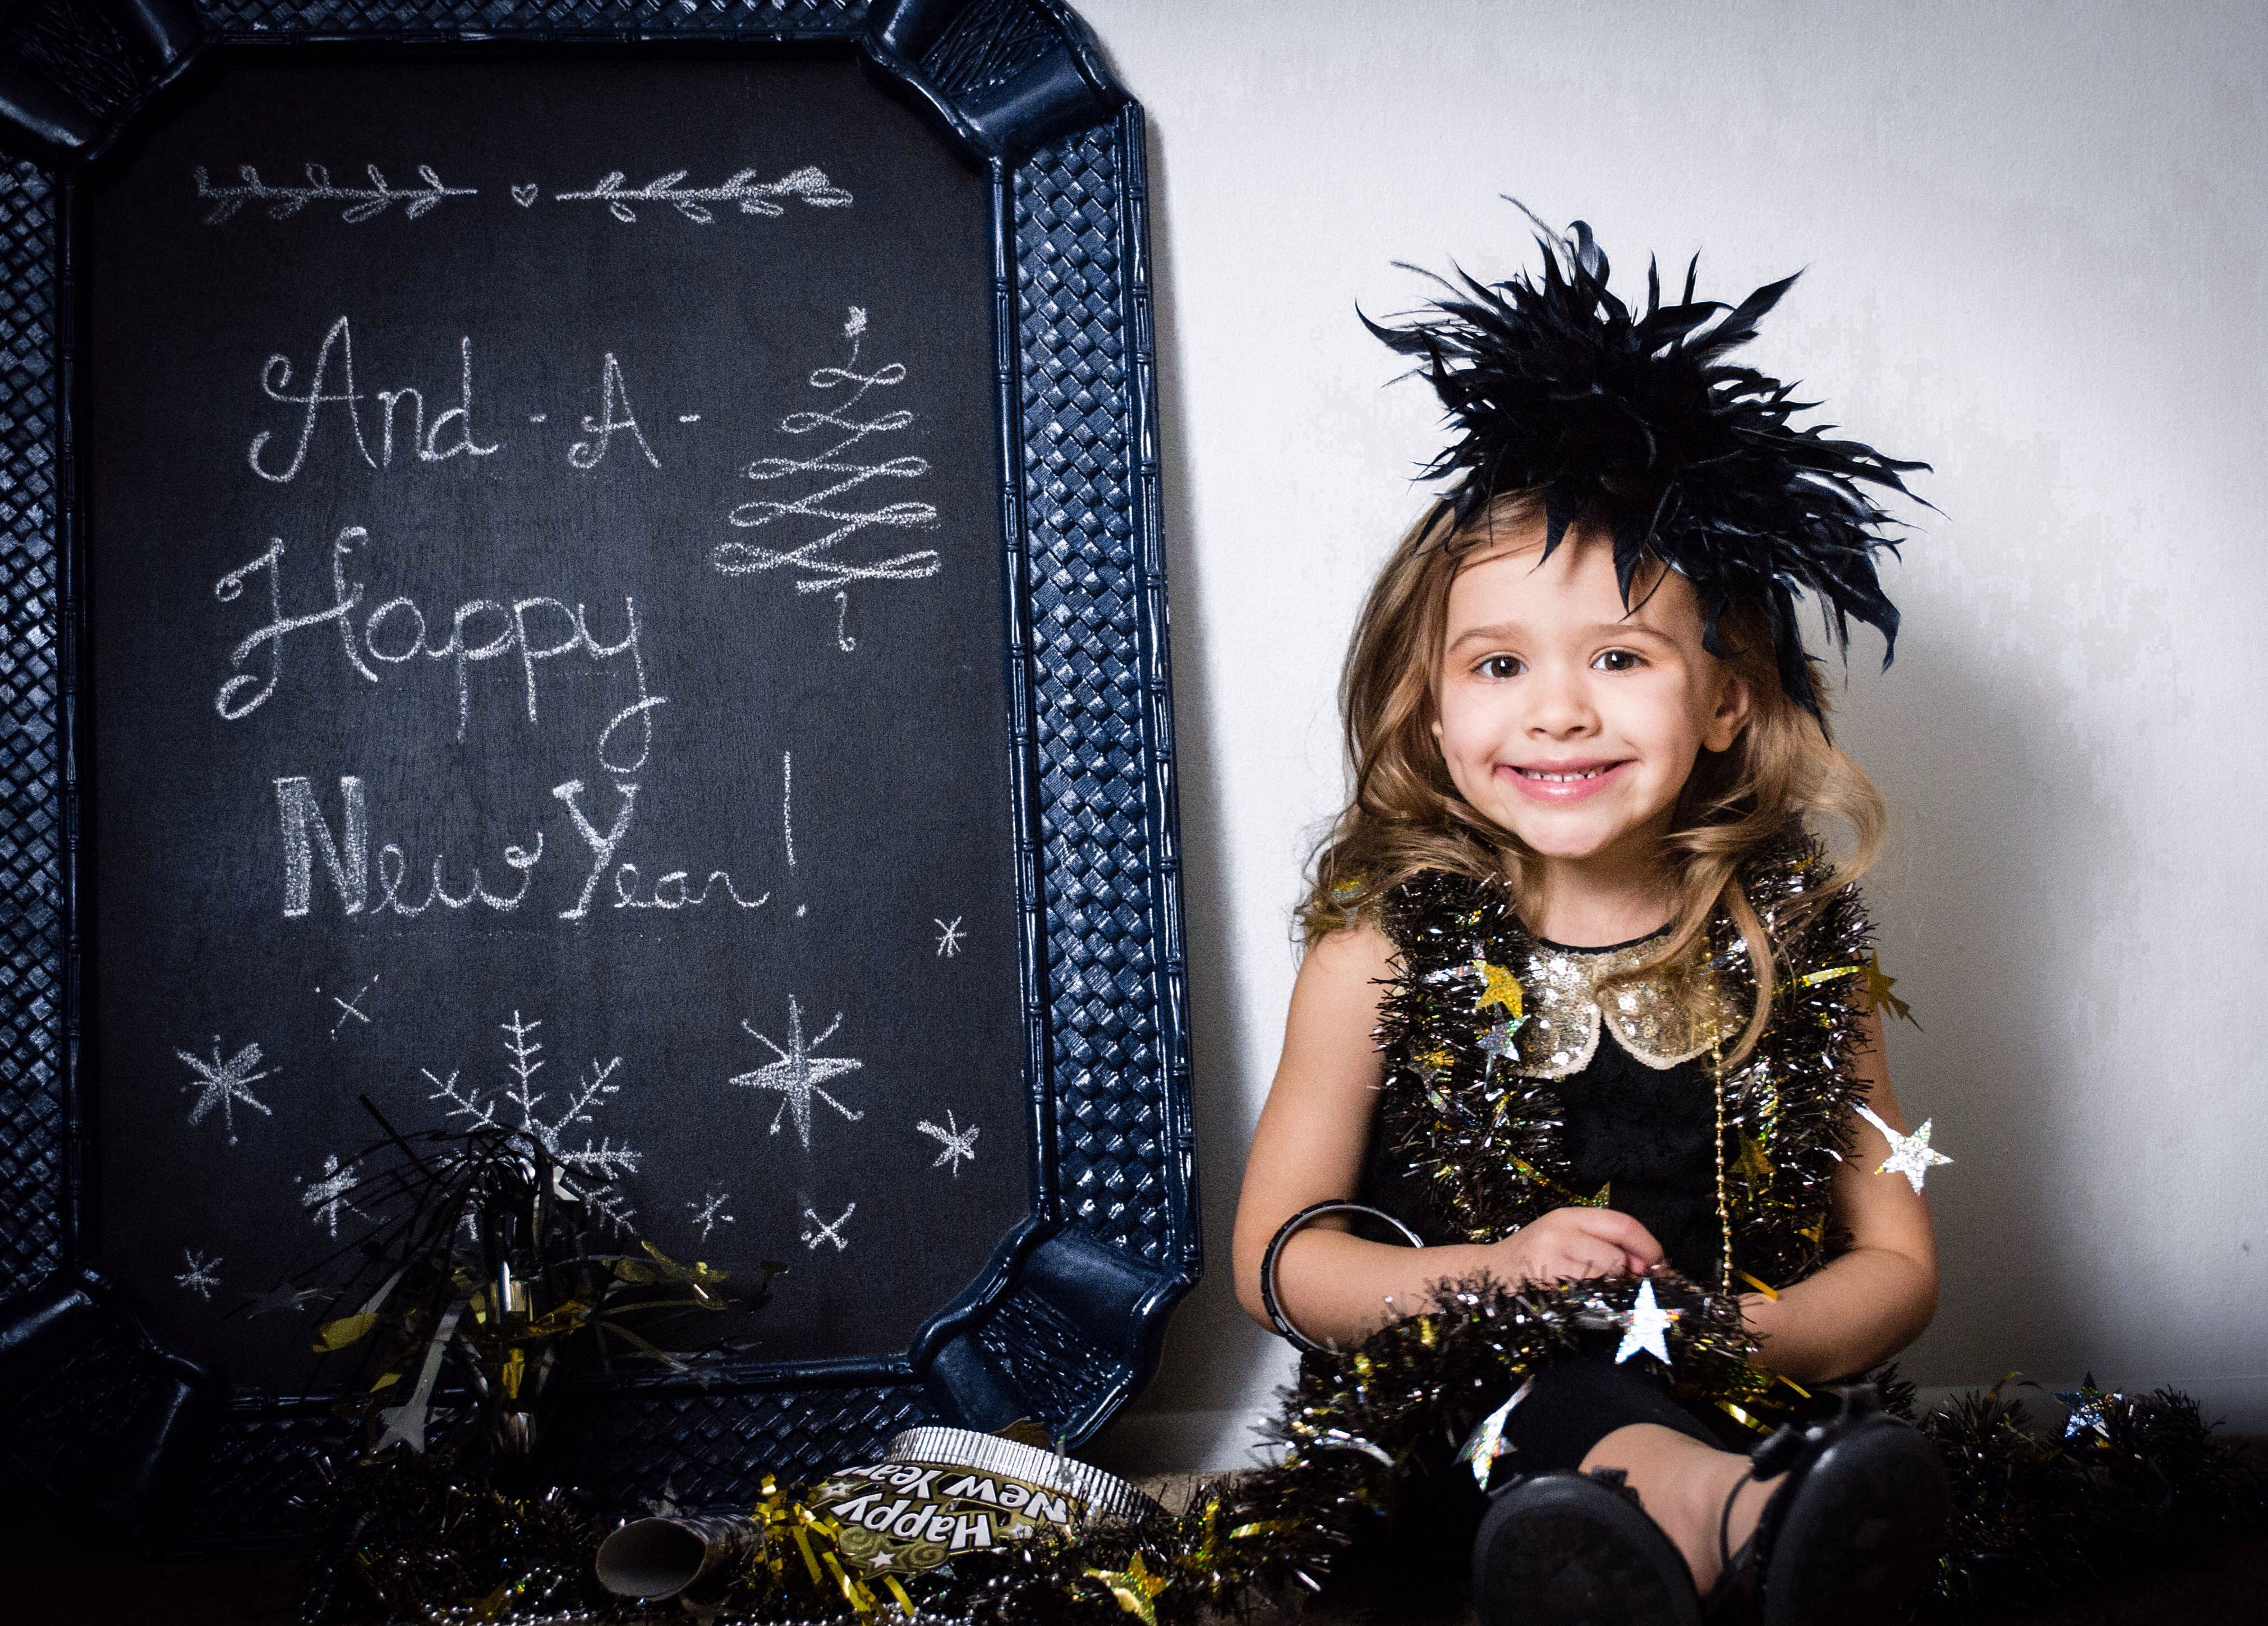 Pin By Lilly Kulb On Lets Have A Photo Shoot New Years Eve Toddler New Years Eve Pictures New Year Photos